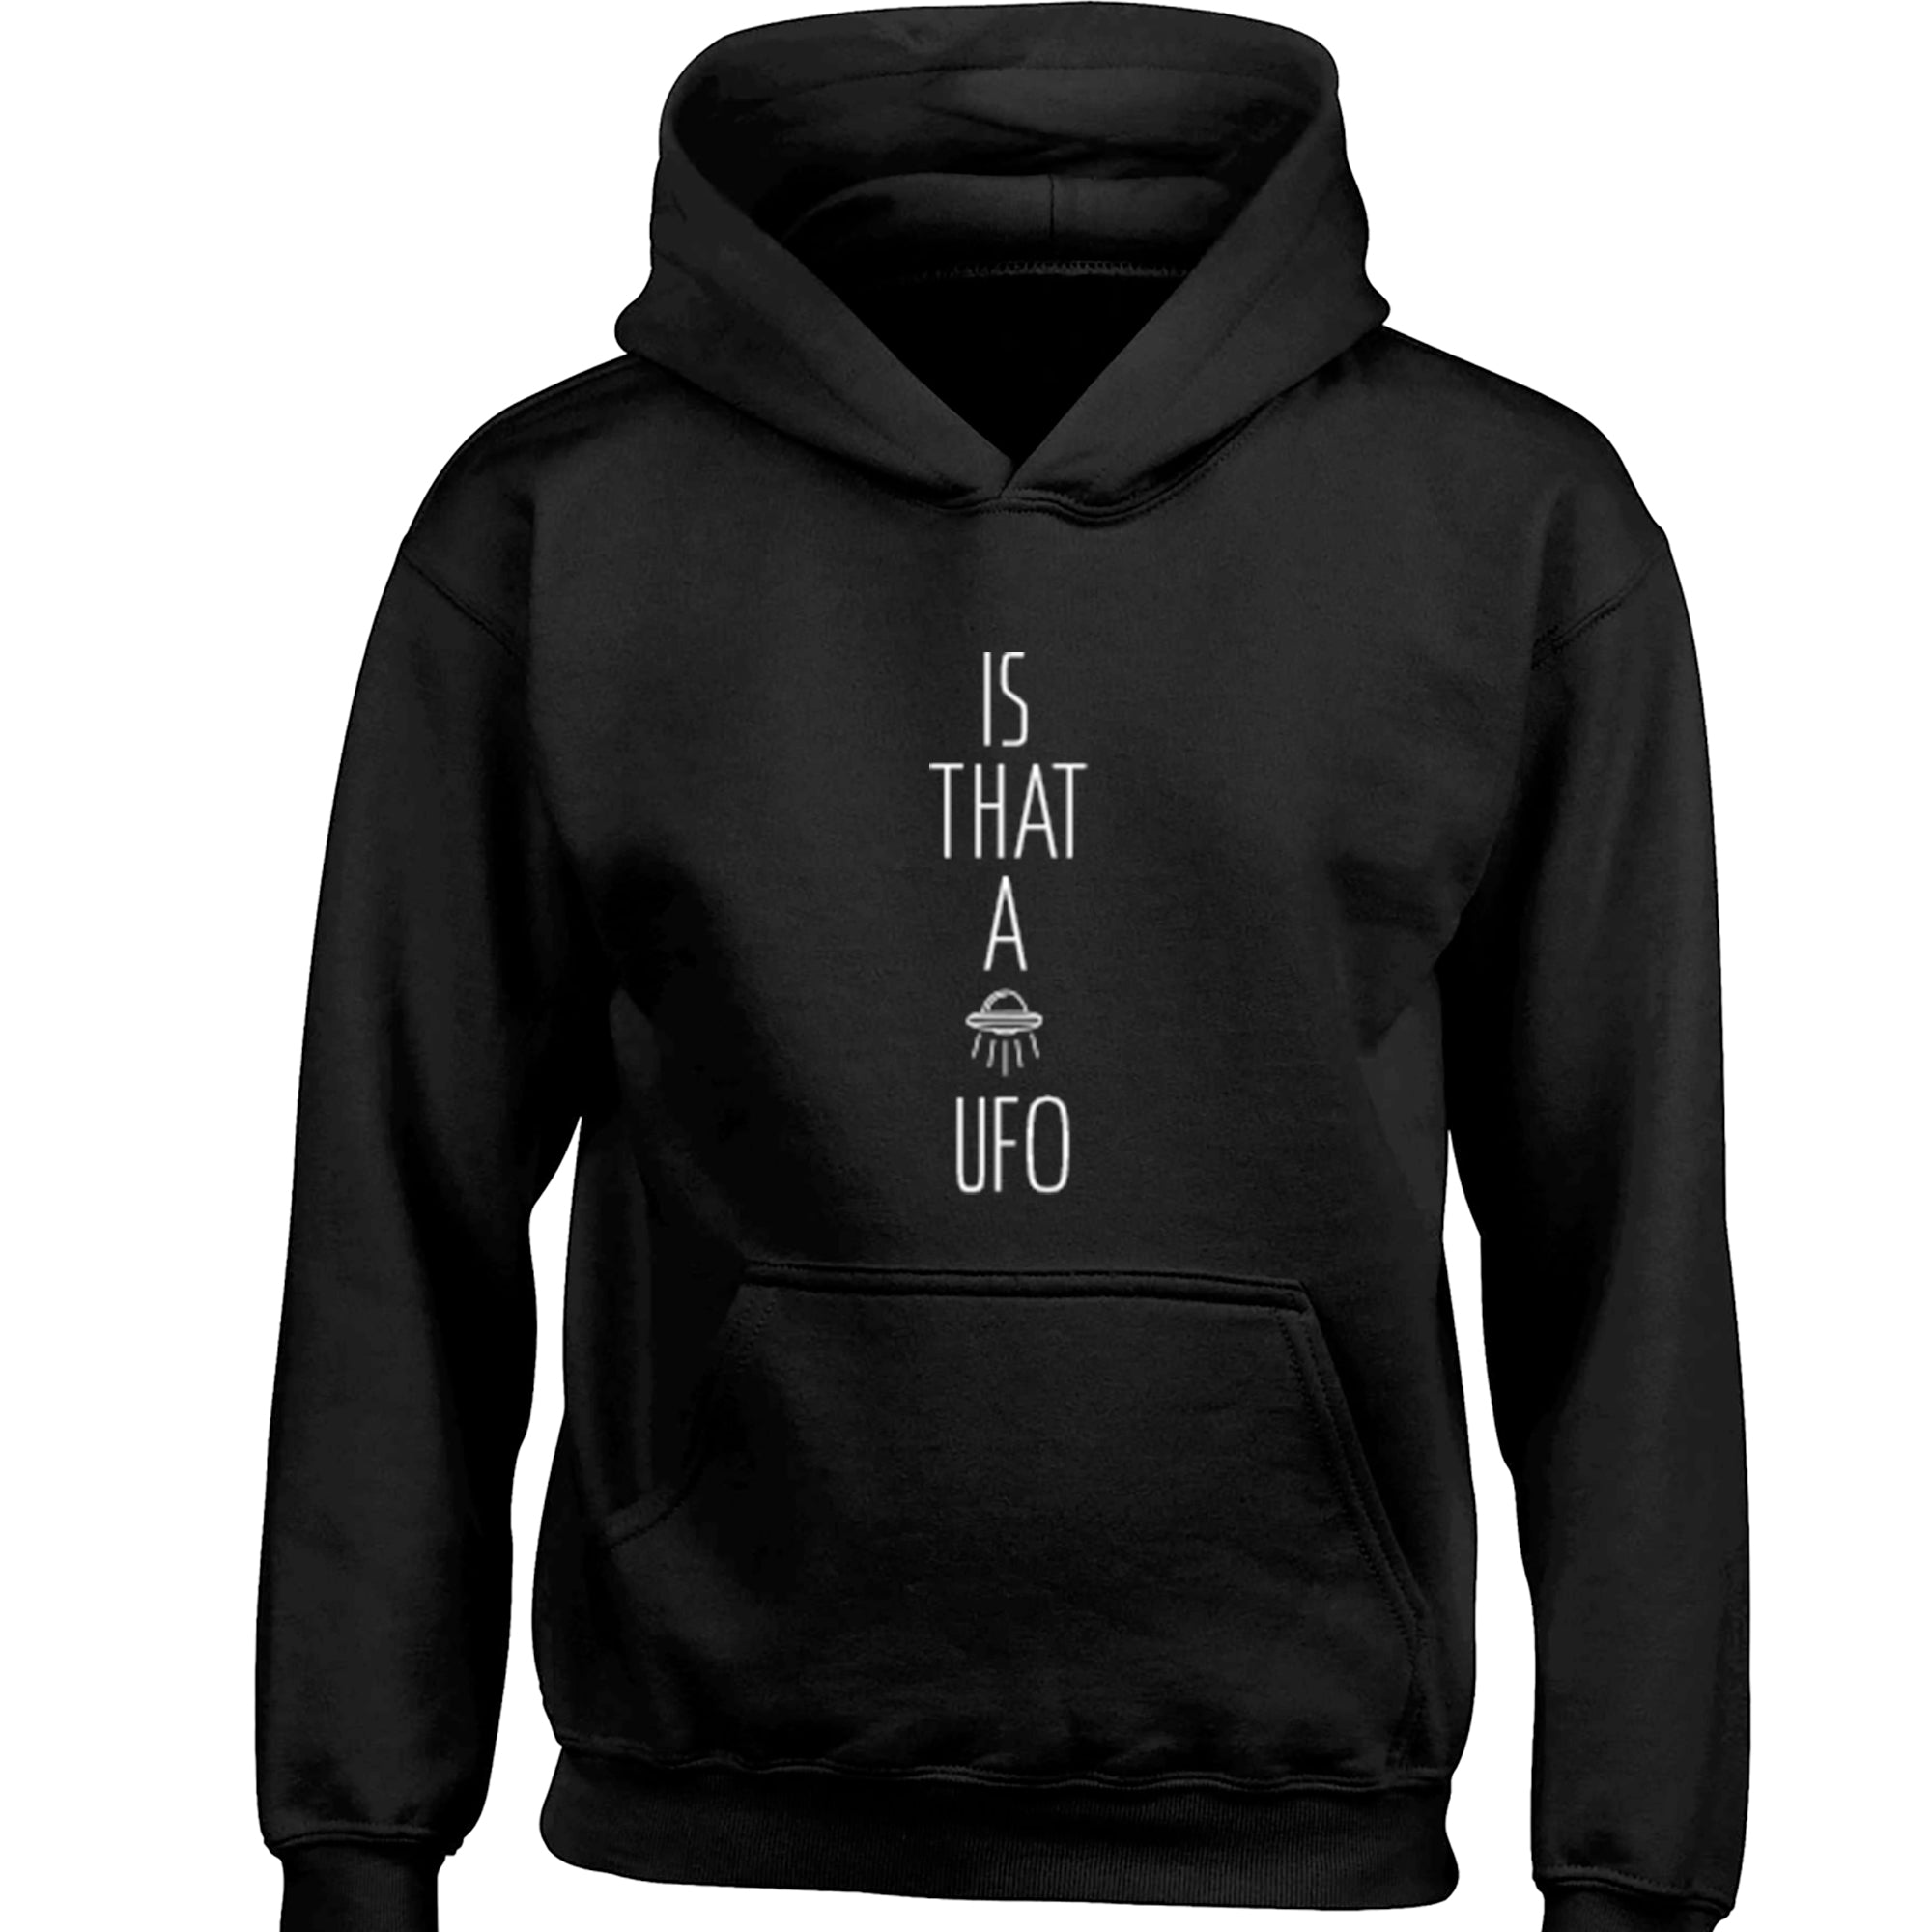 Is That A UFO Childrens Ages 3/4-12/14 Unisex Hoodie S0002 - Illustrated Identity Ltd.